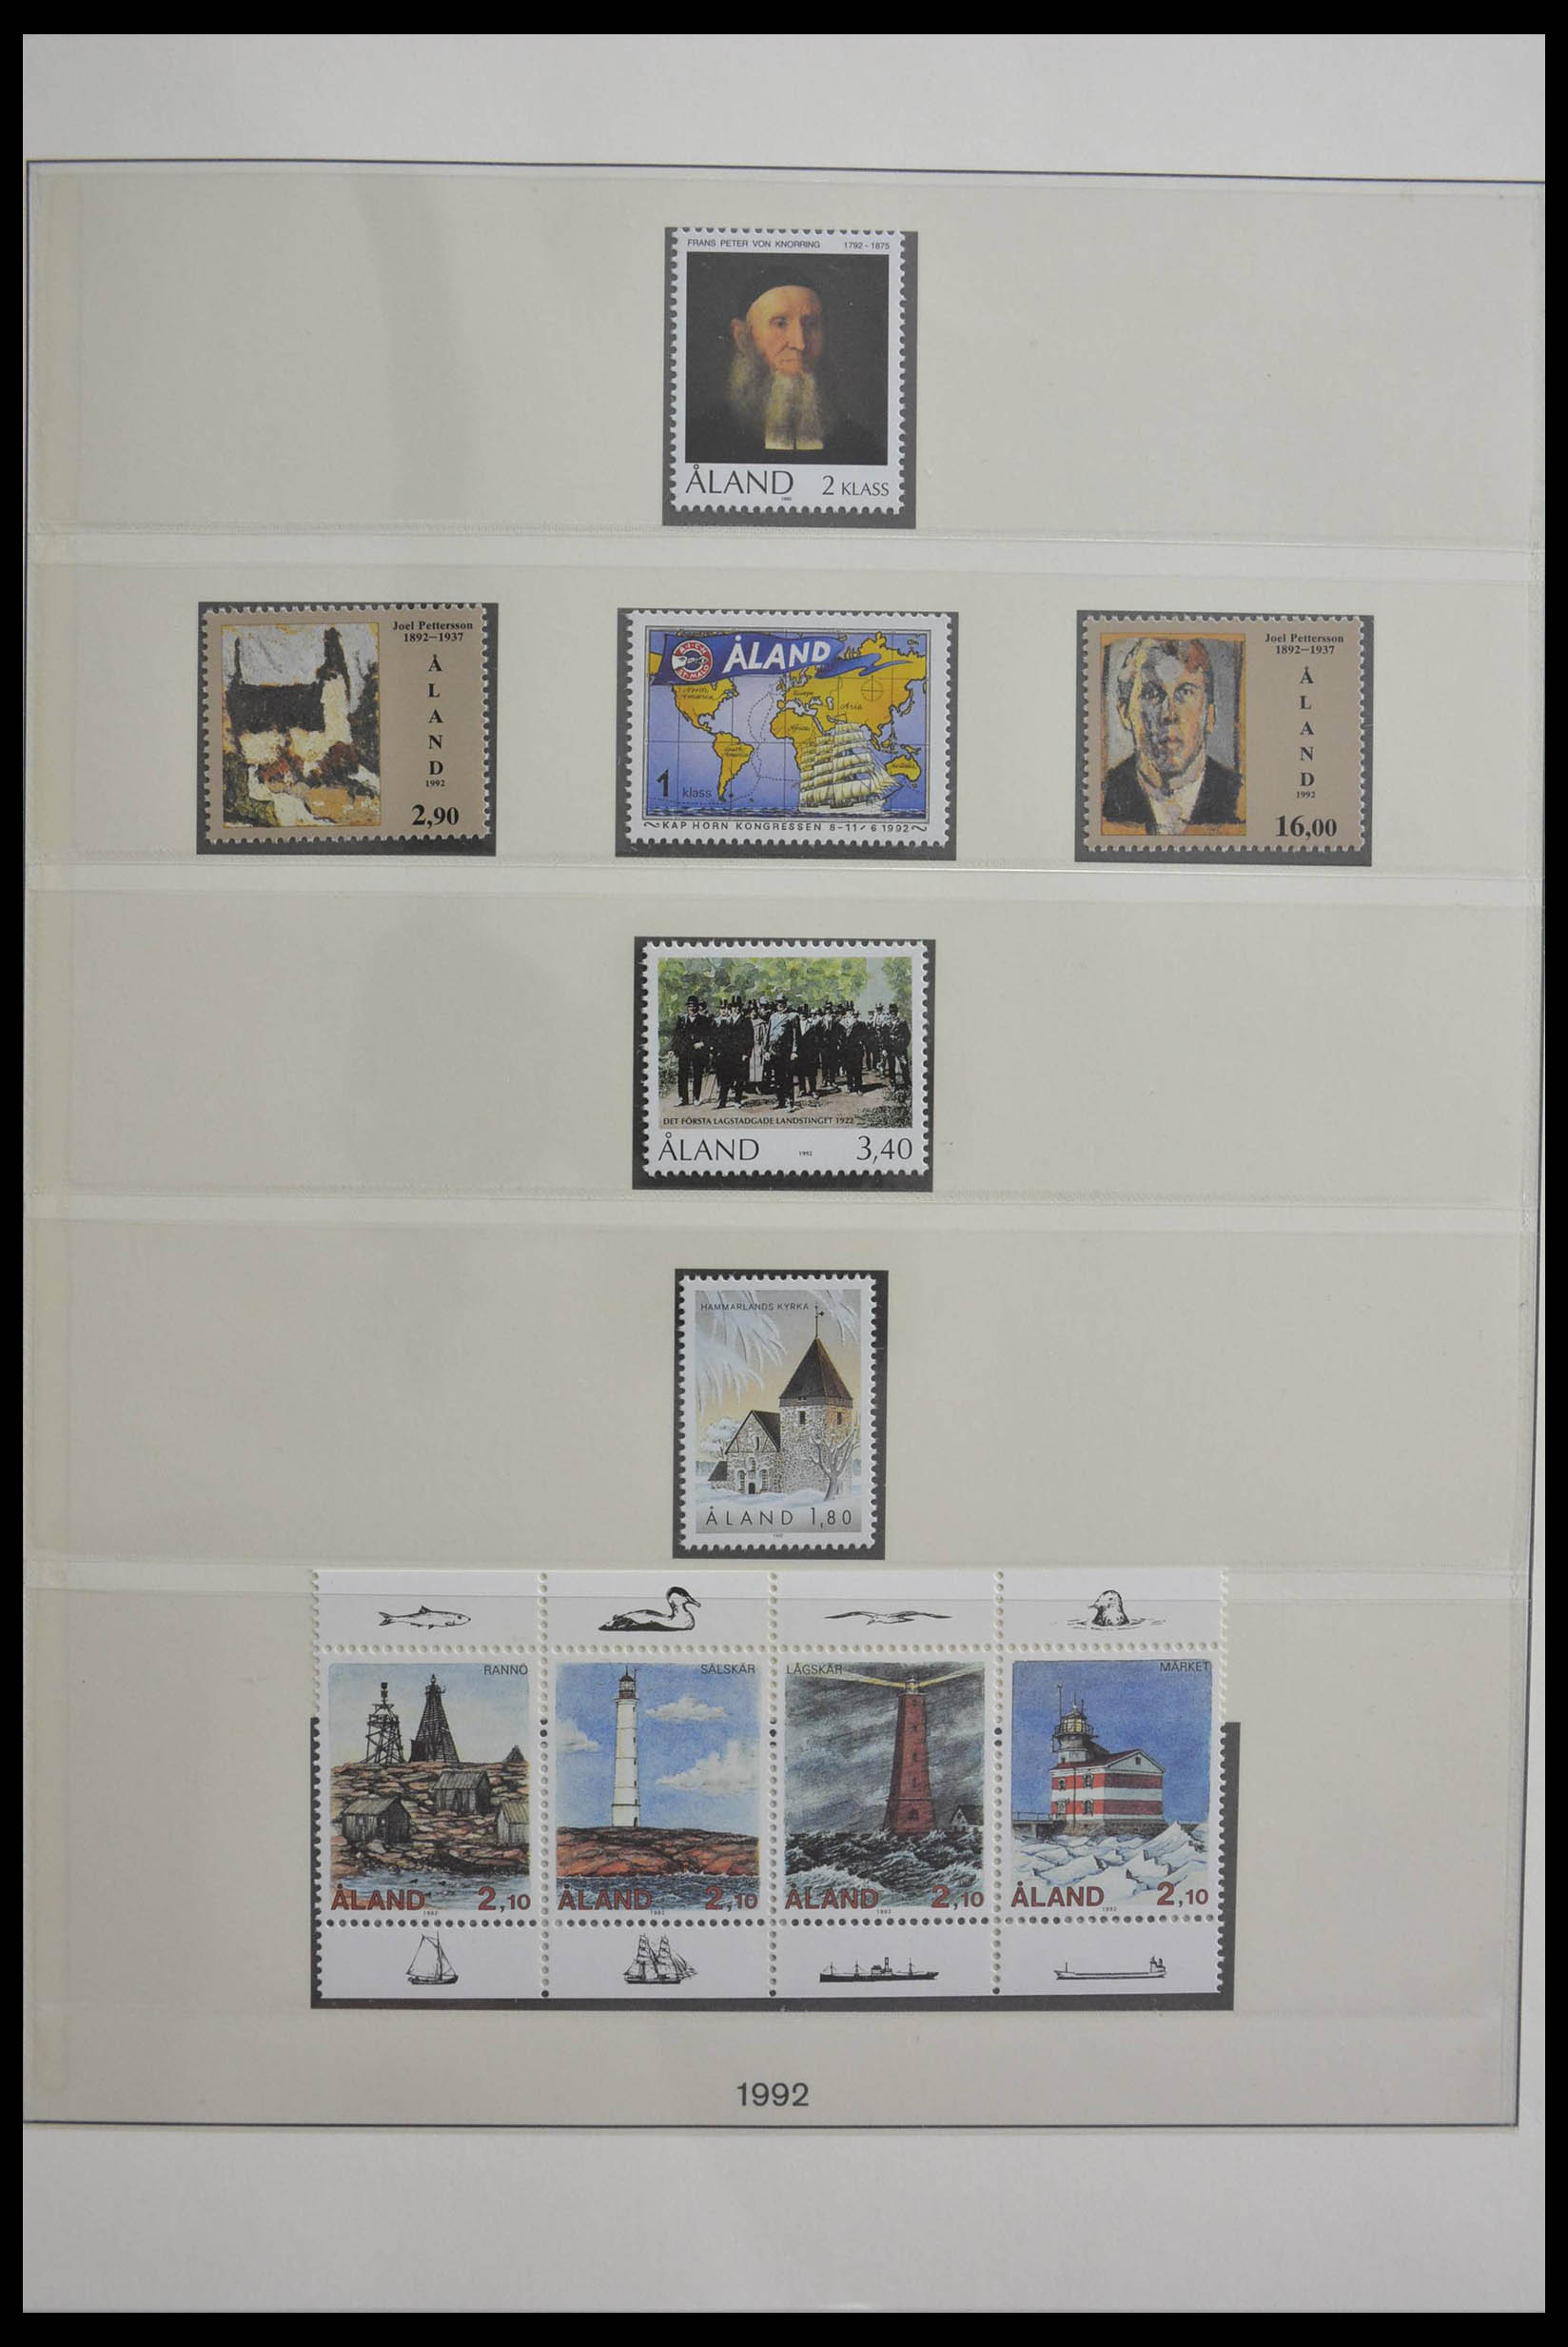 28584 010 - Stamp collection 28584 Aland 1984-2011.